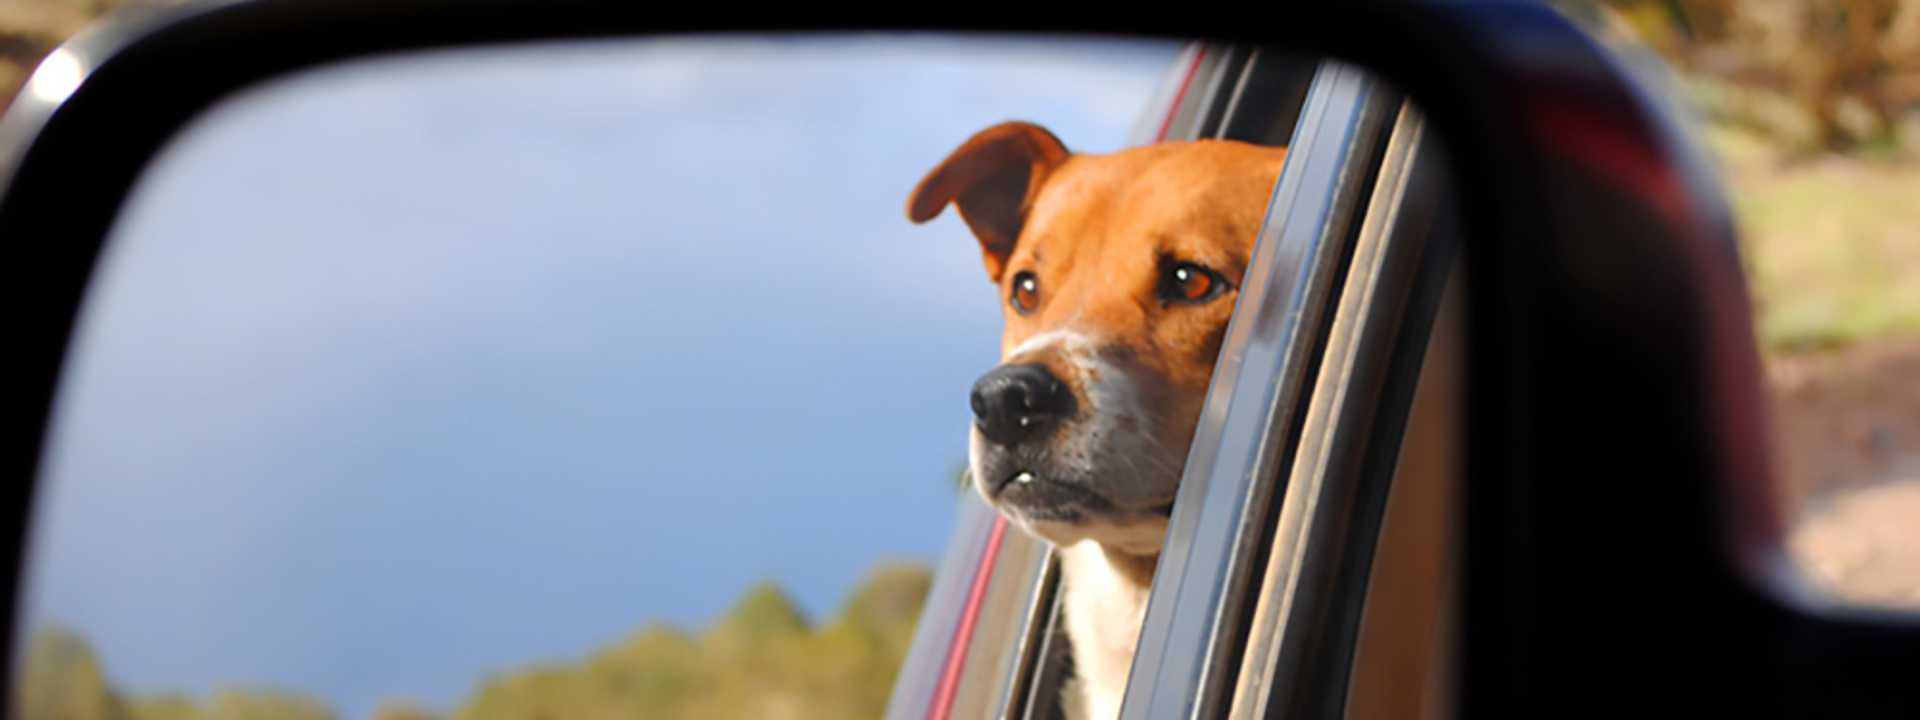 A dog is seen in the side view mirror.